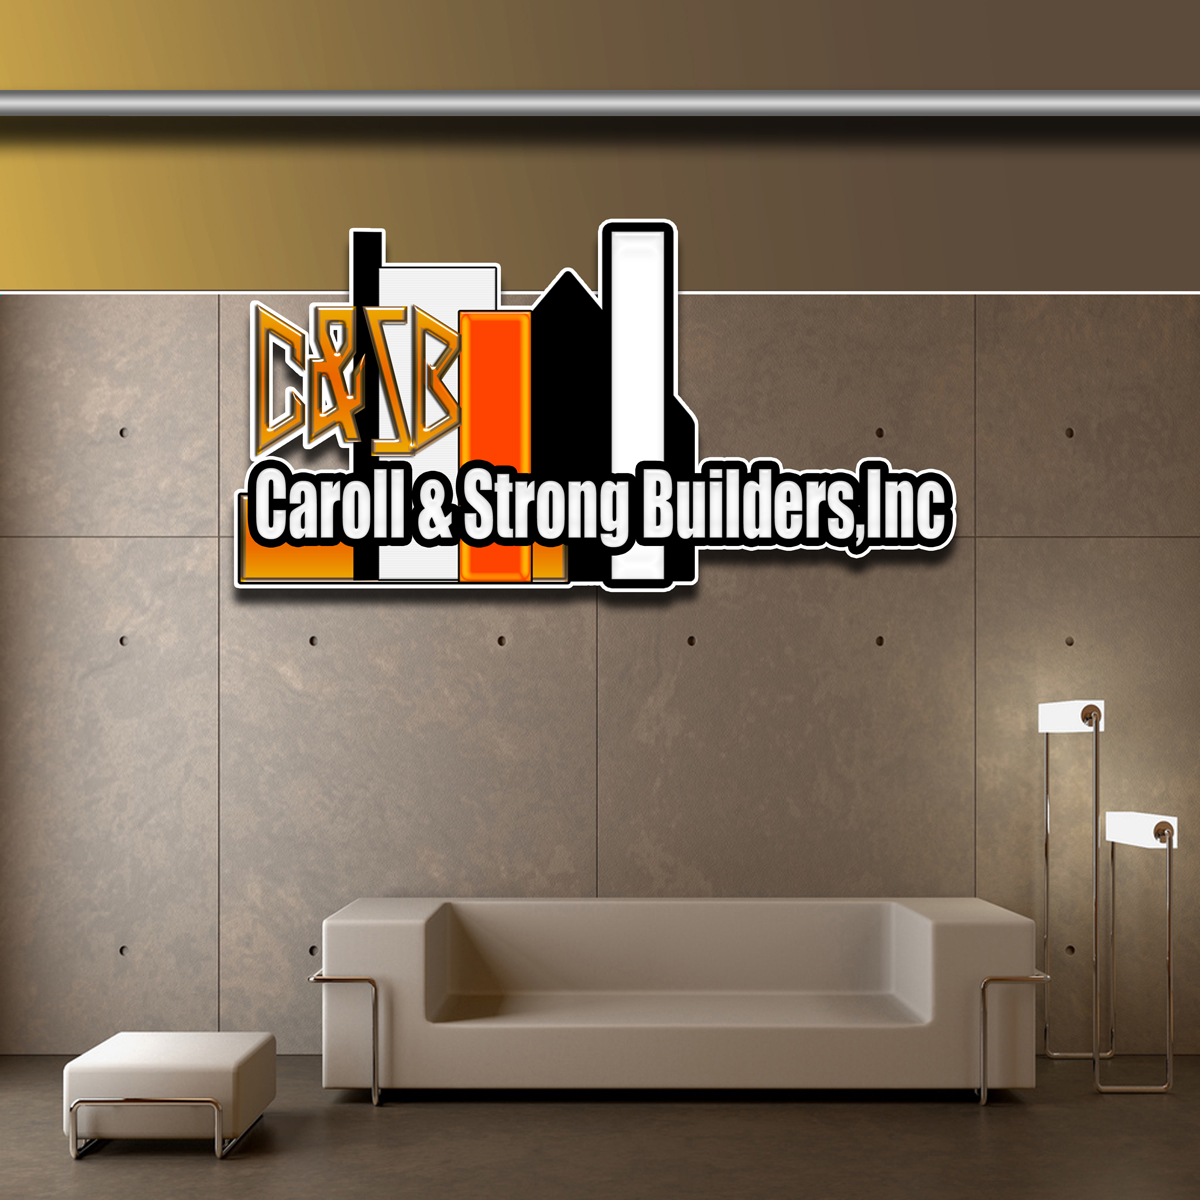 Logo Design by MITUCA ANDREI - Entry No. 18 in the Logo Design Contest New Logo Design for Carroll & Strong Builders, Inc..